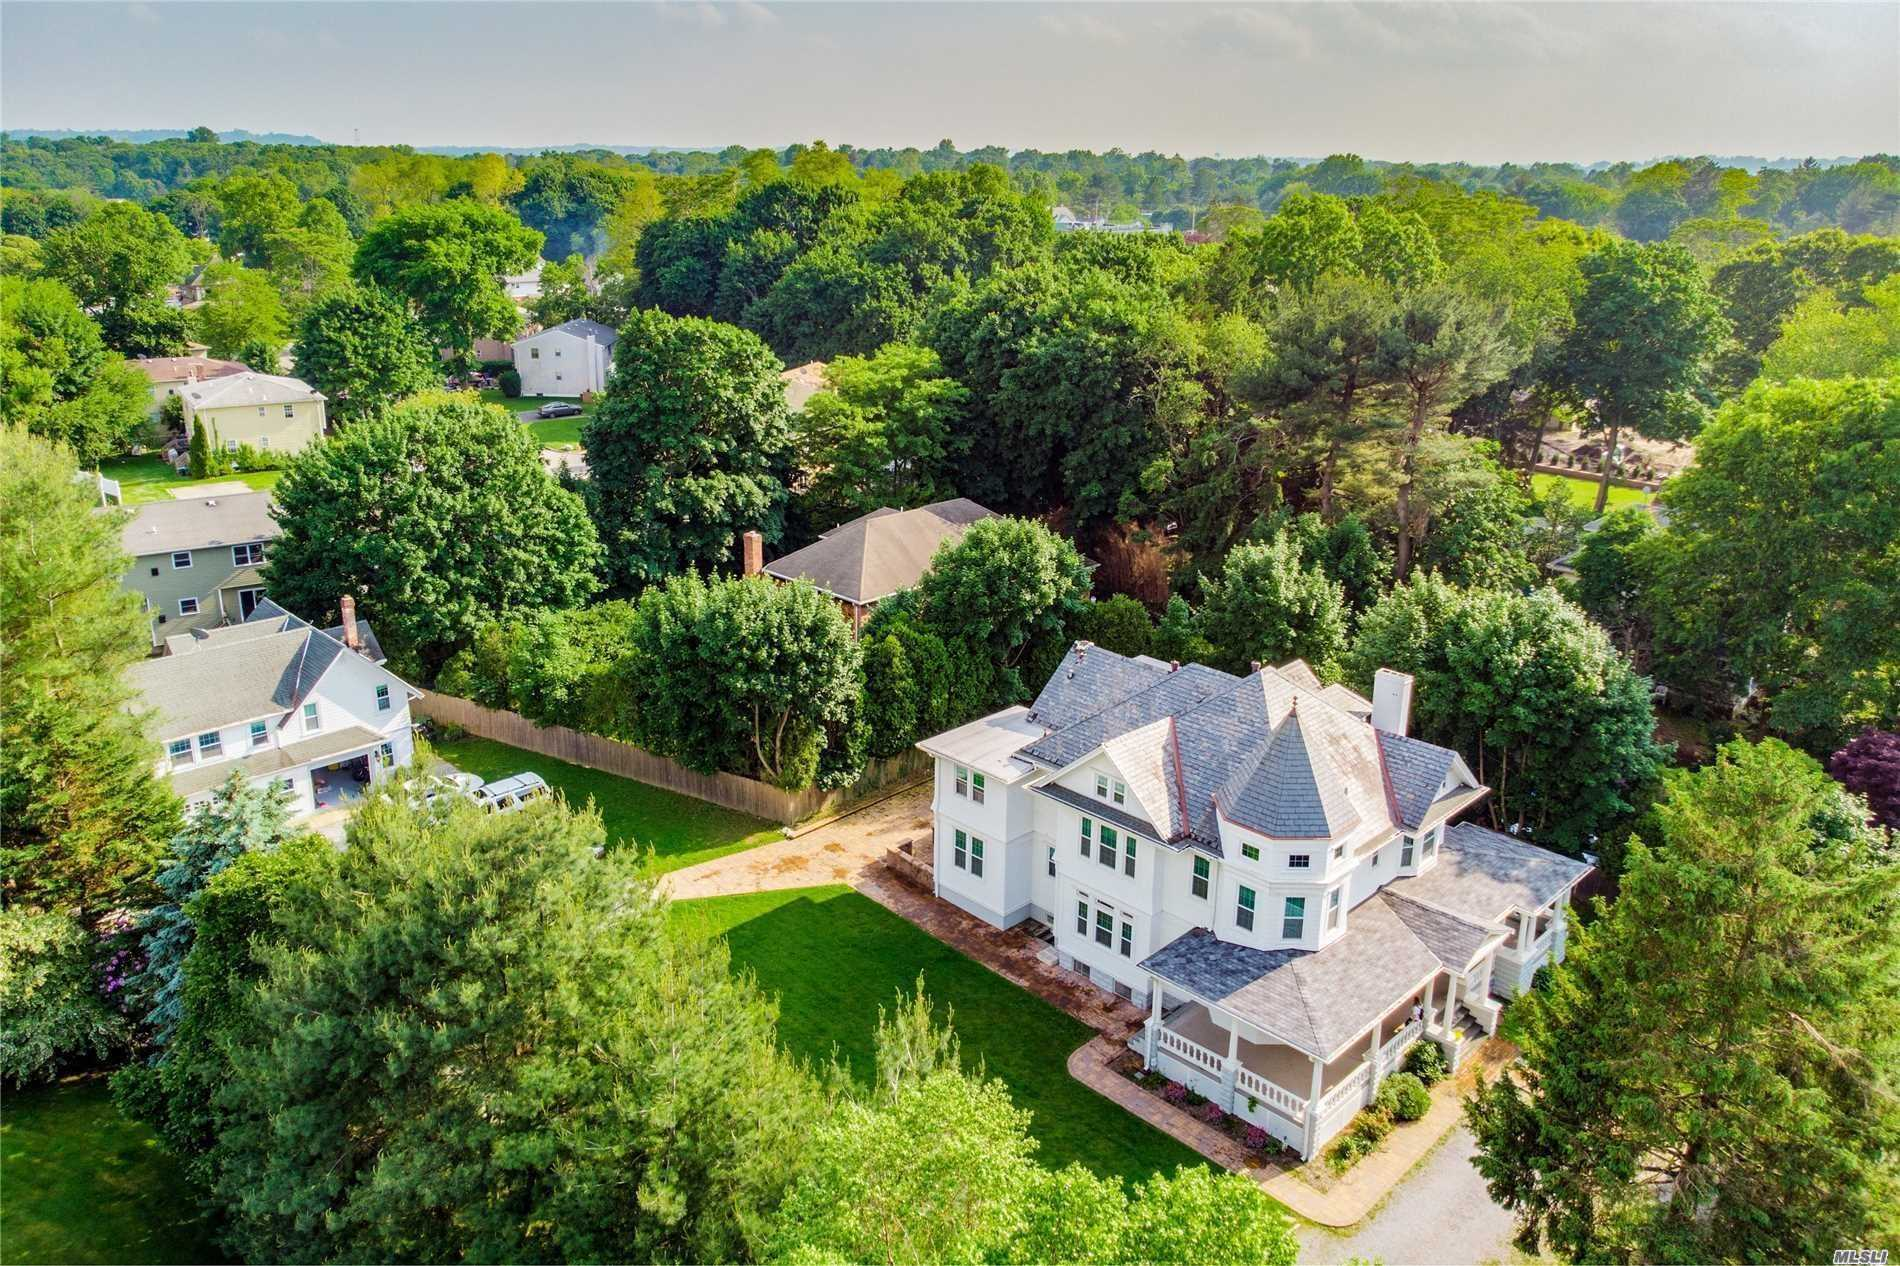 Excellent Condition 8 Bedrooms 6.5 Baths.Charming And Homey Victoria Sits On Half An Acre Of Property. The Home Has Undergone A Complete Custom Renovation Featuring Custom Floors, Millwork, Finishes, Windows, Slate Roof, Oversized Rooms, And Very High Ceilings Throughout. Separate Guest House With An Additional 3 Bedrooms And 2 Full Baths. Convenient Location Walking Distance To School And Transportation.